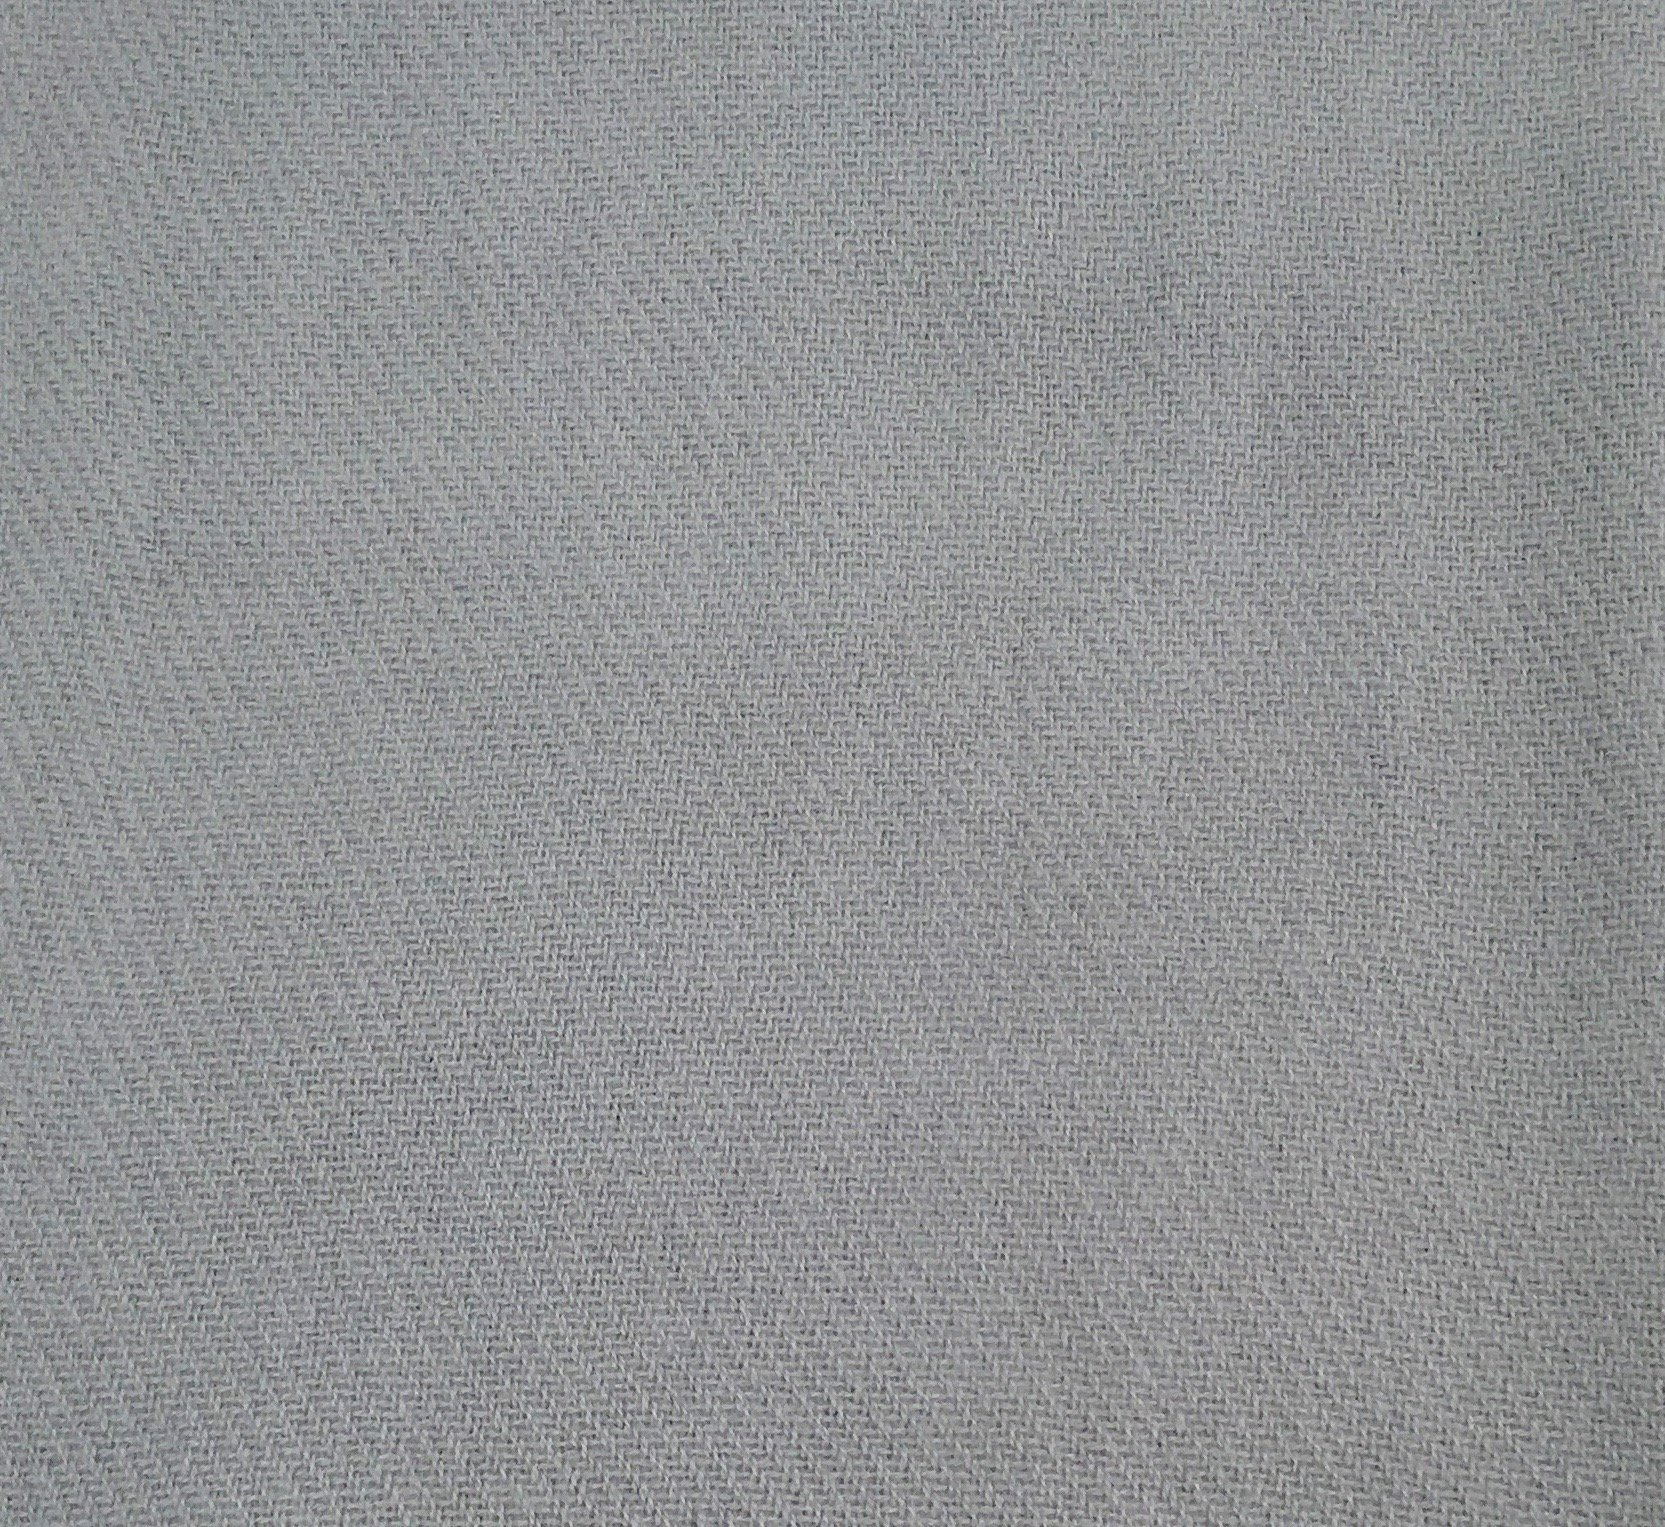 Light Grey High Grade 100% Cashmere Shawl Scarf Wrap Hand Made from Nepal NEW by CJ Apparel (Image #2)